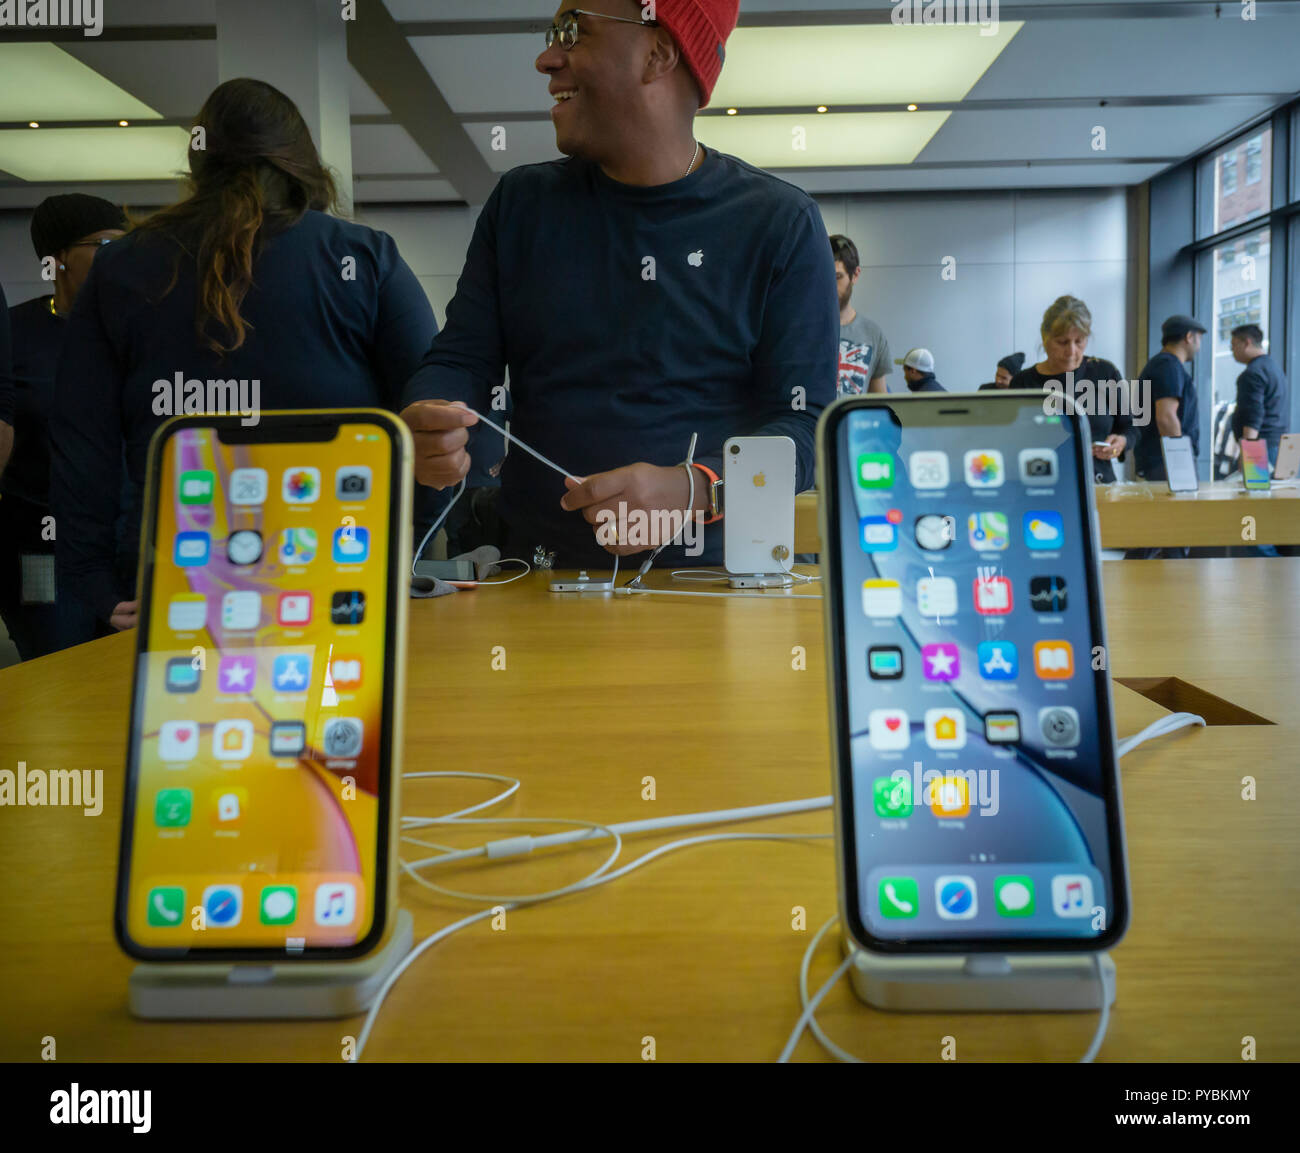 An Apple employee in the Apple store in the Meatpacking District in New York adjusts the security cables of the display of the new relatively affordable iPhone XR on Friday, October 26, 2018, the first day they went on sale.  The new phones, anxiously awaited by drooling iPhone aficionados, sell for a base $749 as opposed to the previously released XS and XS Max which sell for a whopping $999 and $1099. In addition the XR comes in an array of colors. (© Richard B. Levine) - Stock Image